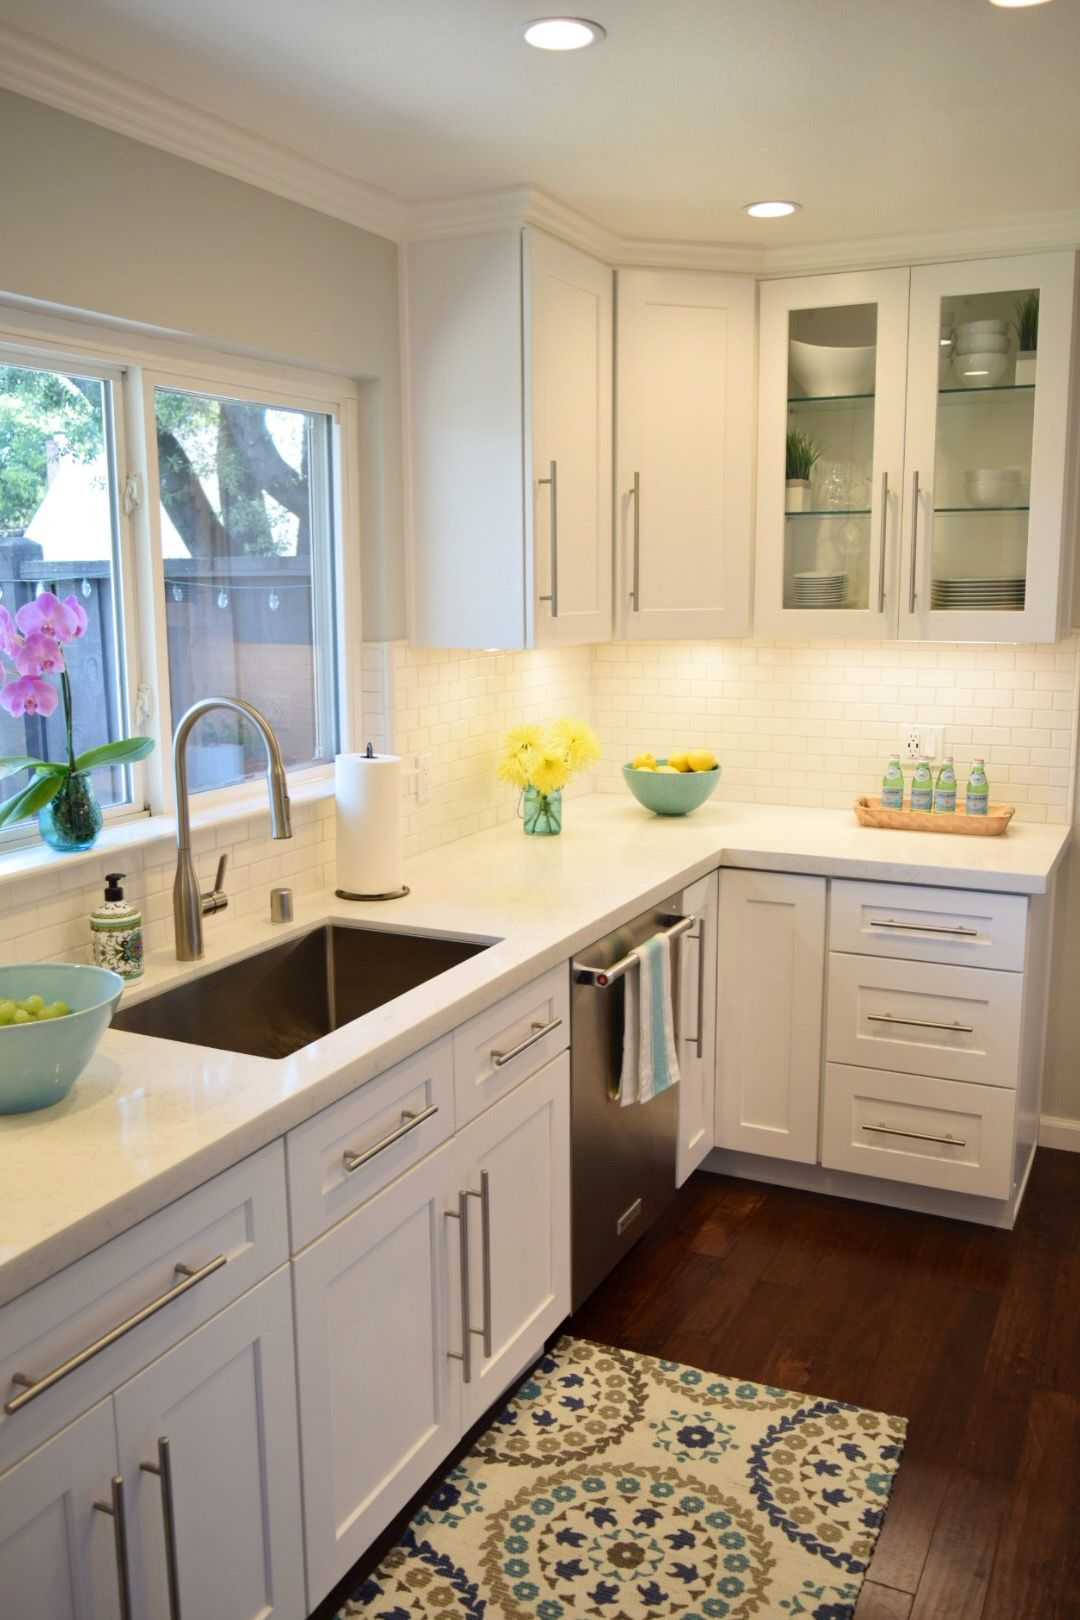 New Kitchen Repair Faucet Reveal A White Is The Perfect Backdrop For Colorful Accessories Dishes And Accents All Available At Homegoods Sponsored Pin